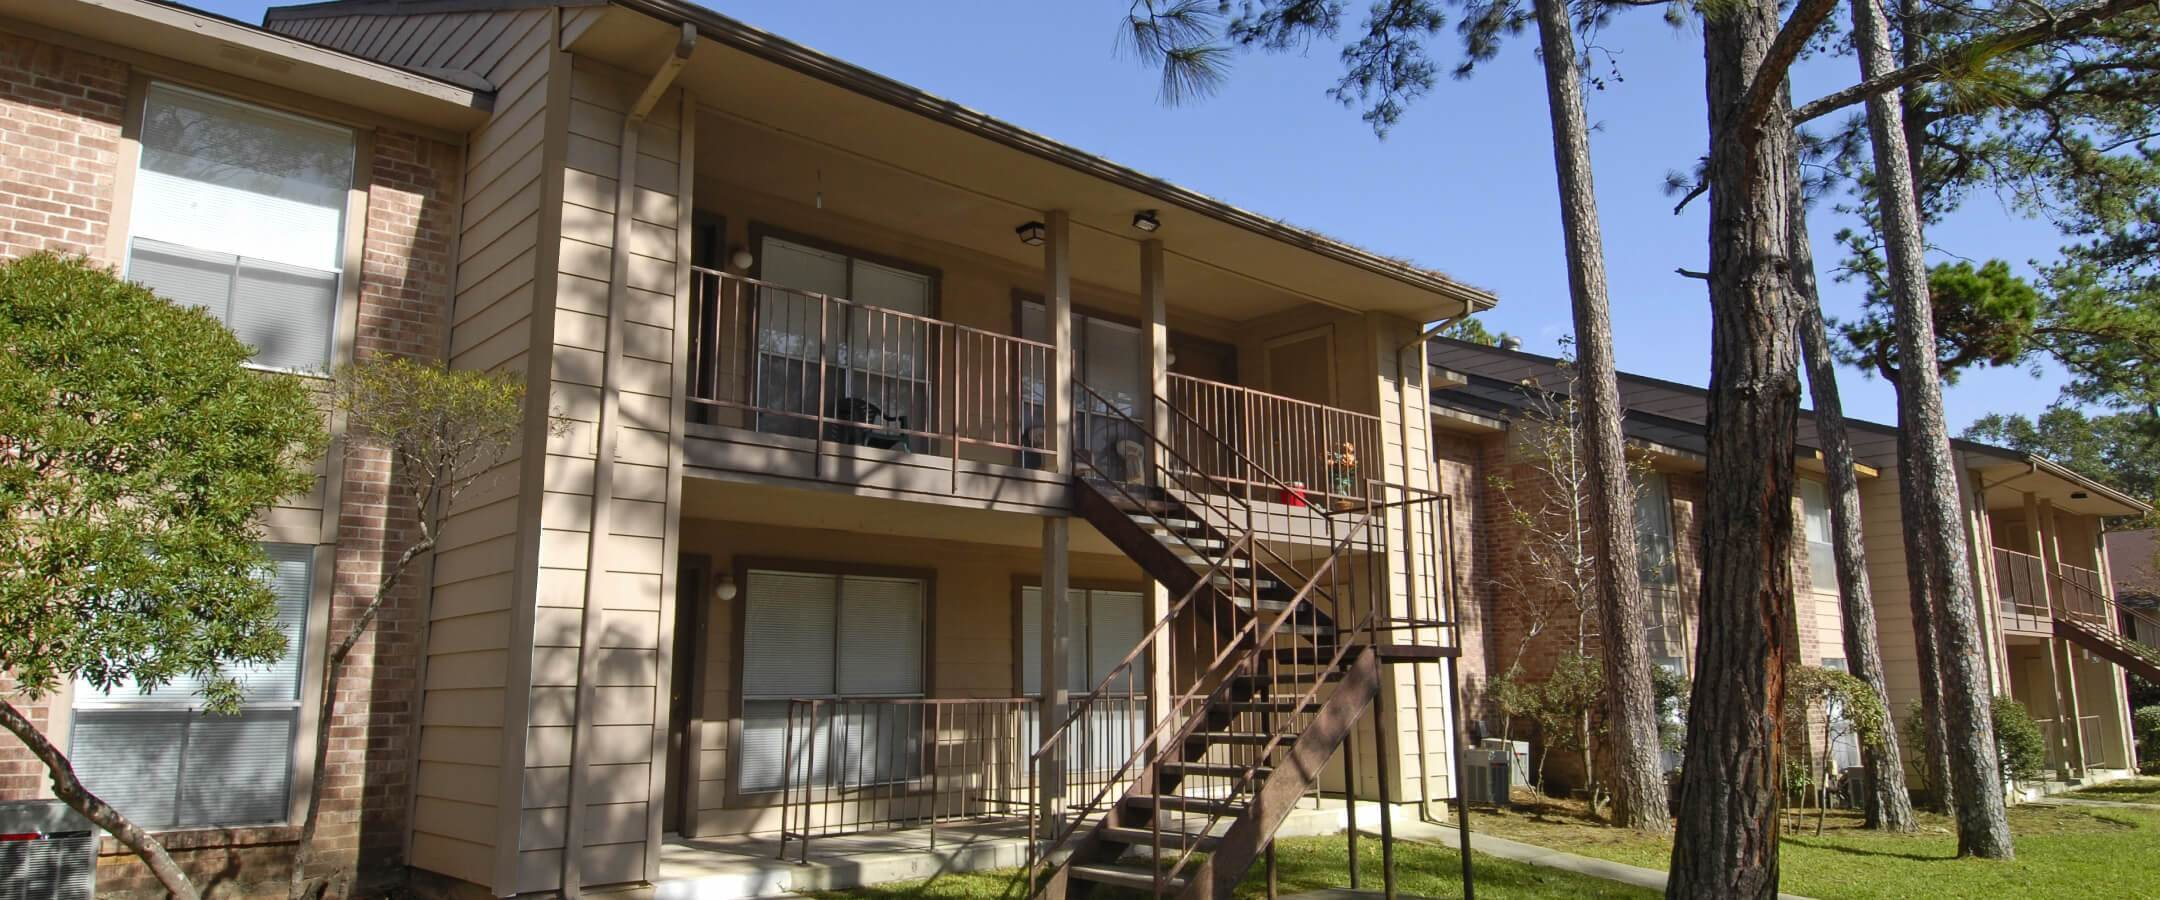 Best Wood Glen Apartments Apartments In The Woodlands Tx With Pictures